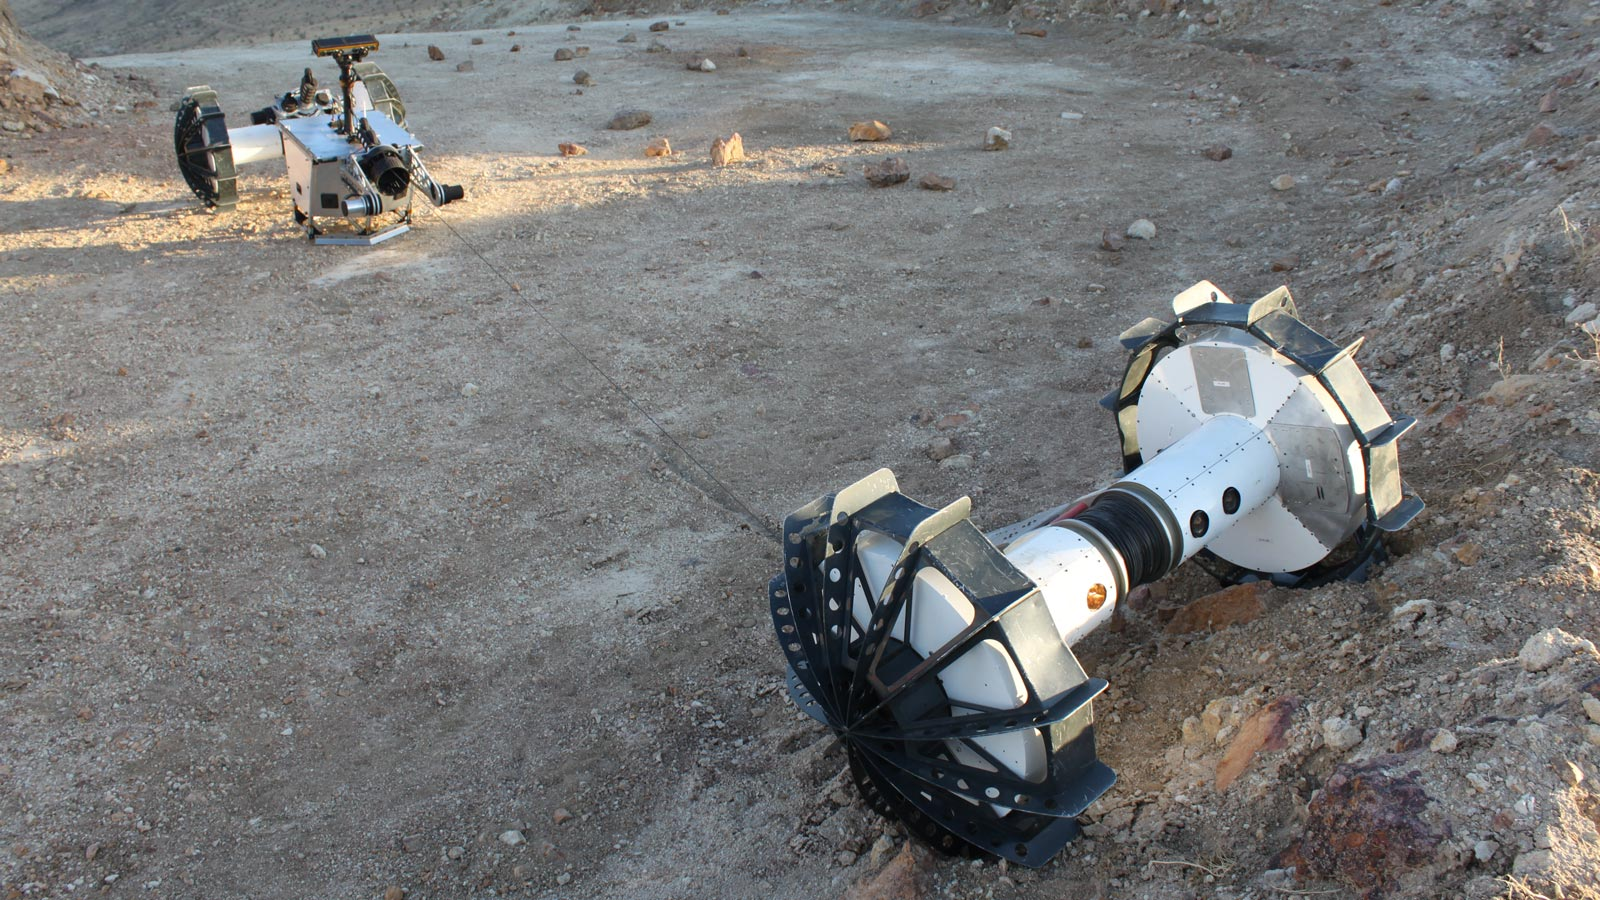 The DuAxel rover separates into two single-axled robots so that one can rappel down a slope too steep for conventional rovers. Image credit: NASA/JPL-Caltech/J.D. Gammell.